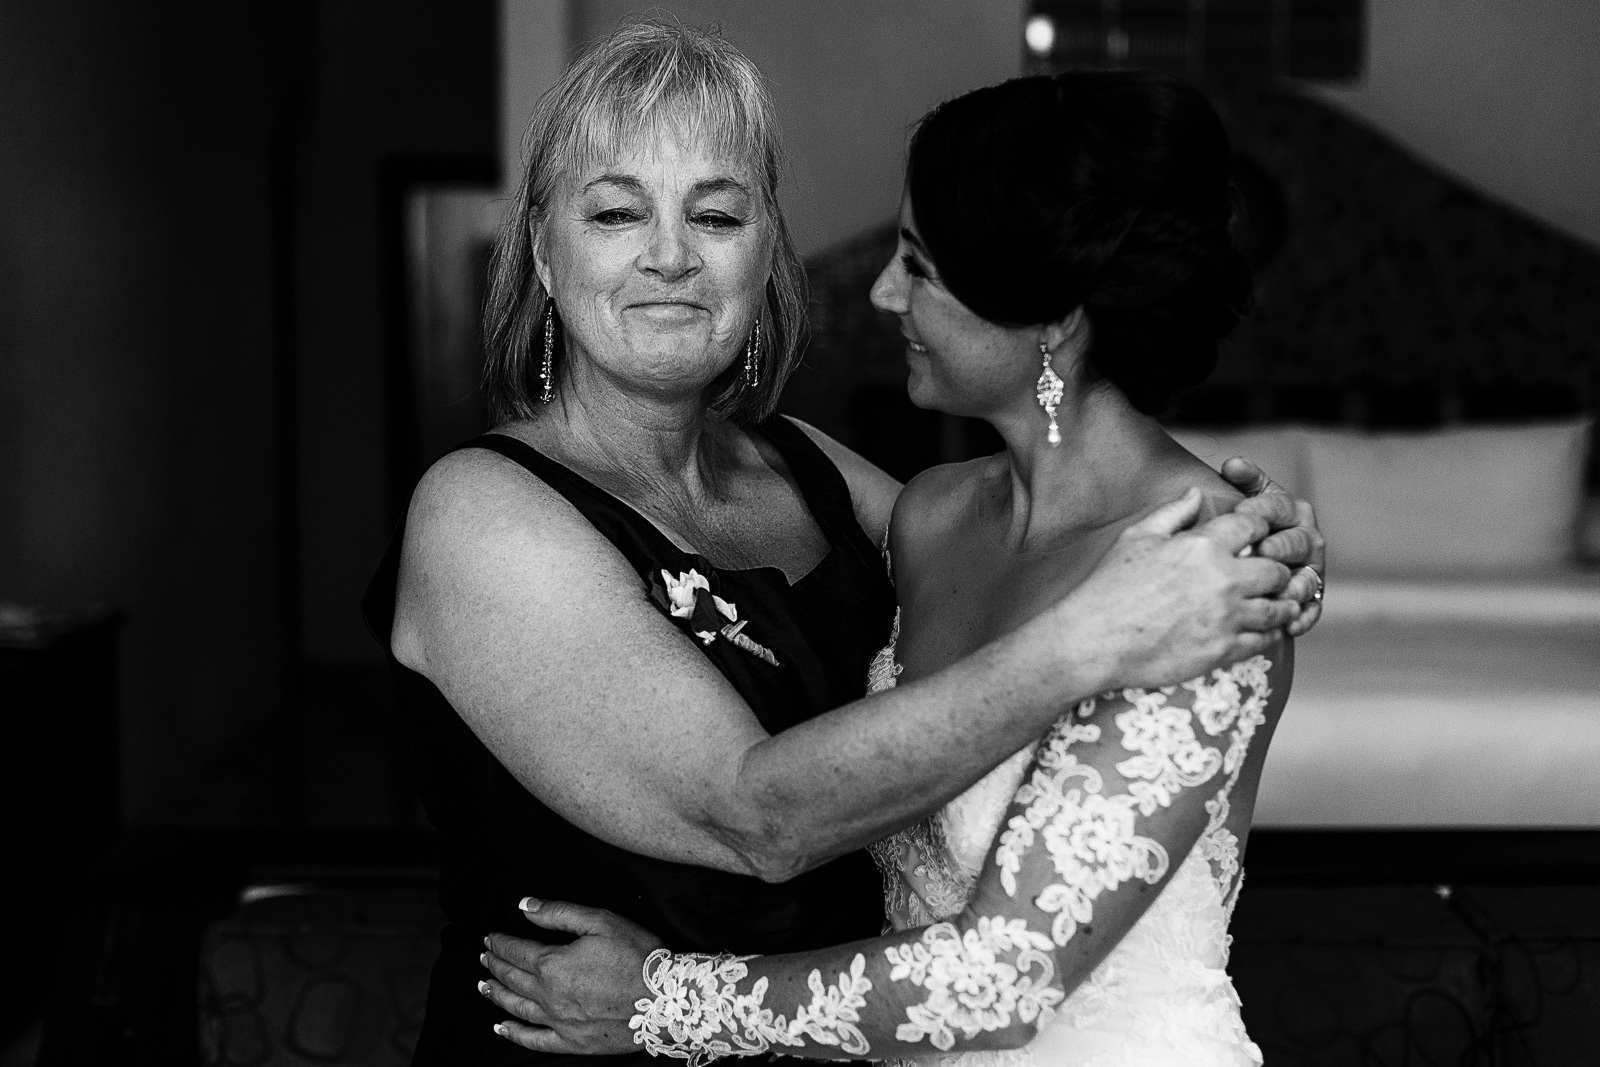 Aunt of the bride crying after a hug